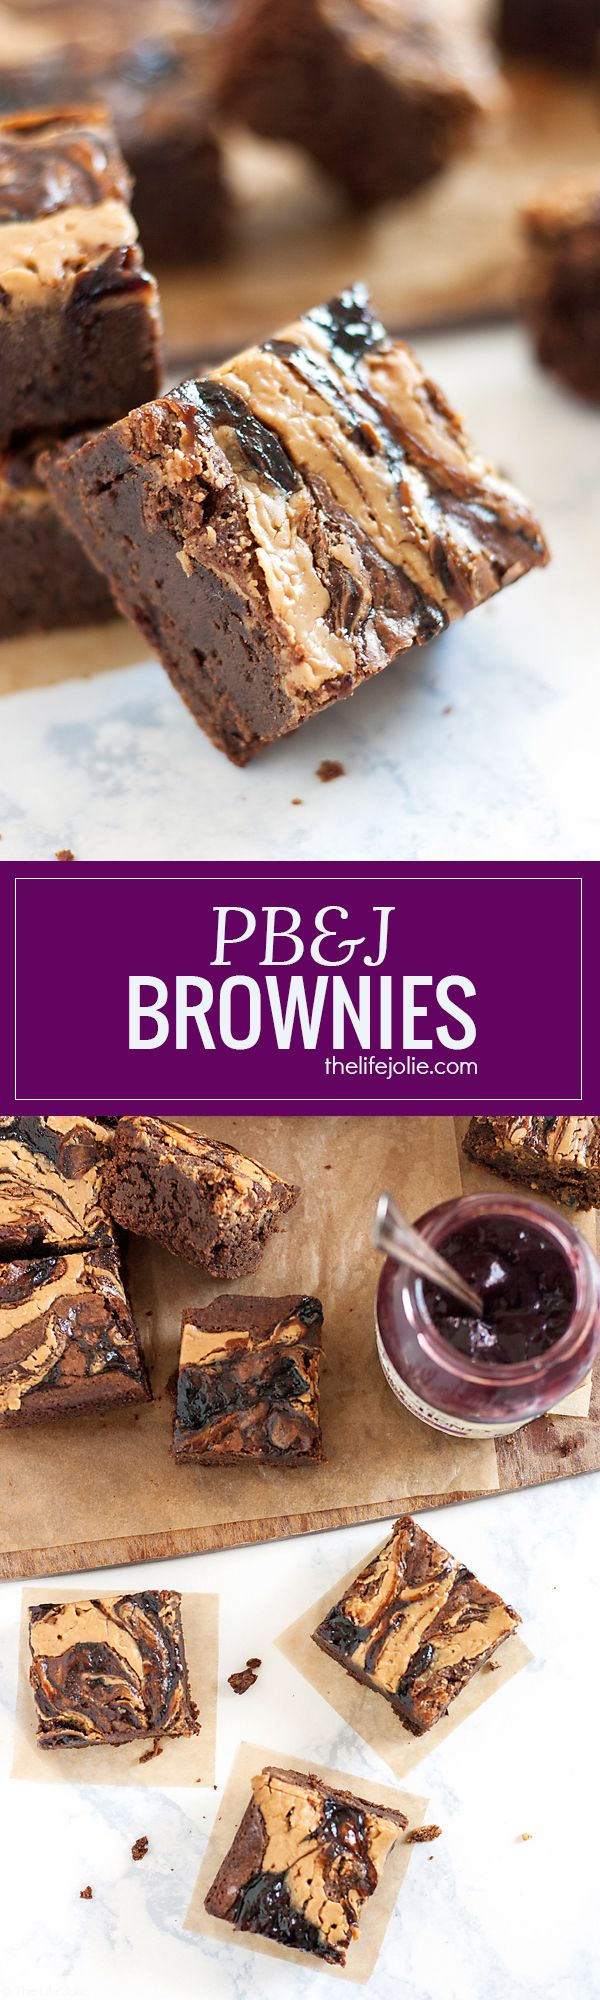 These homemade PB&J Brownies are an easy and delicious holiday dessert option. Chewy, fudgey chocolate brownies with a swirl of peanut butter and the fruit spread of your choice on top, these are made from scratch and would be great on a Thanksgiving of Christmas dessert table or just because you deserve a tasty dessert! #ad #EasyHolidayEats @smuckers